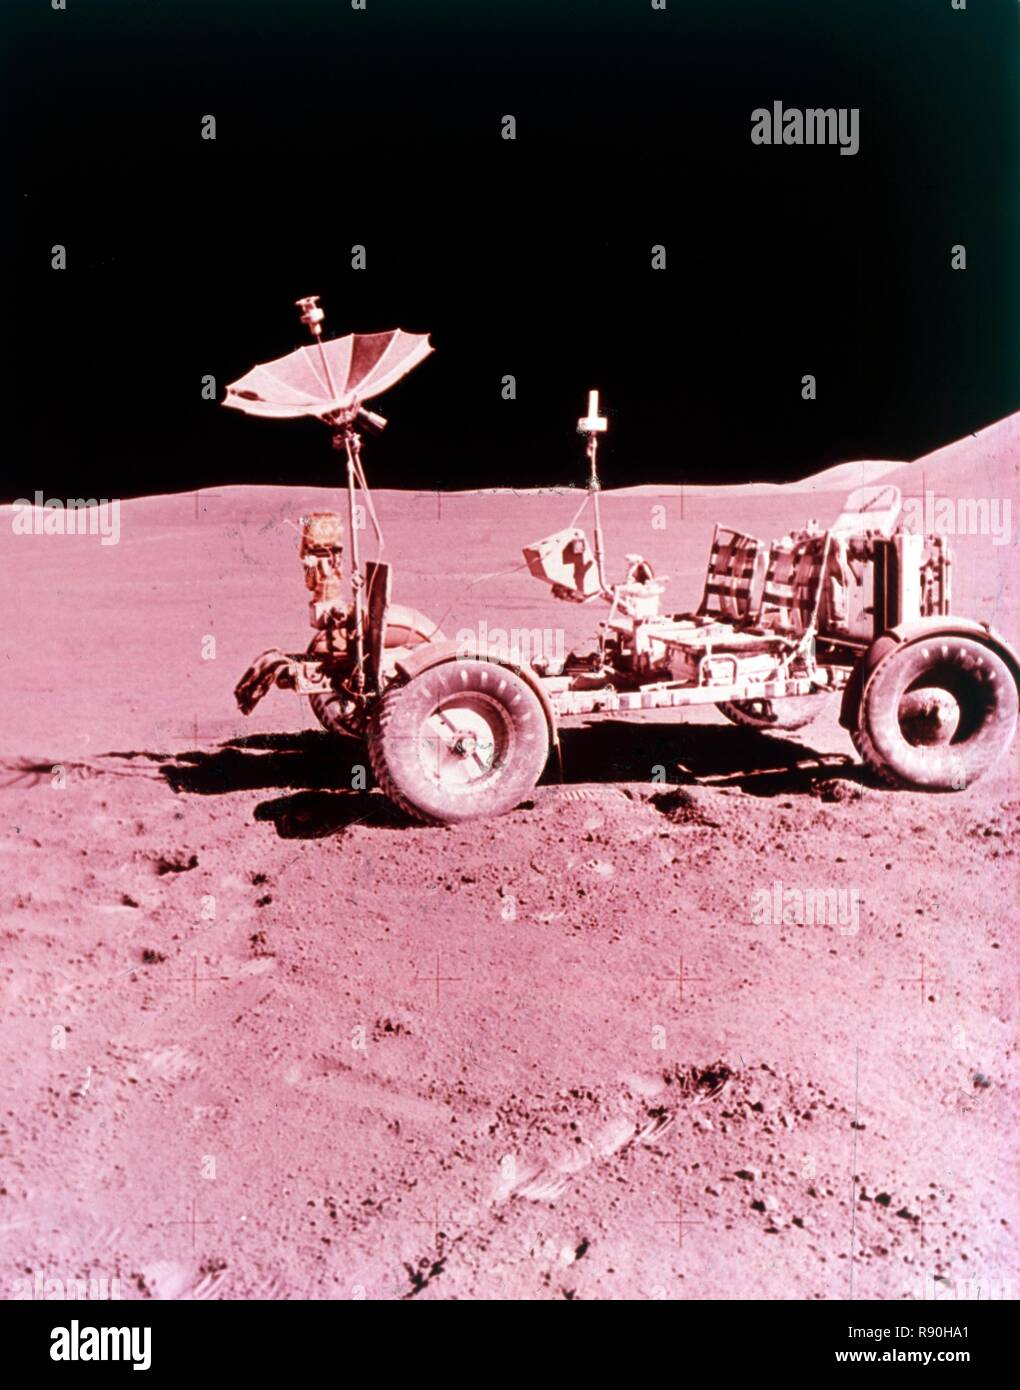 The first Lunar Roving Vehicle, Apollo 15, July 1971. Battery-powered four-wheeled rover used on the Moon in the last three missions of the American Apollo program (15, 16, and 17) in 1971 and 1972. It was popularly known as the 'Moon buggy'. - Stock Image